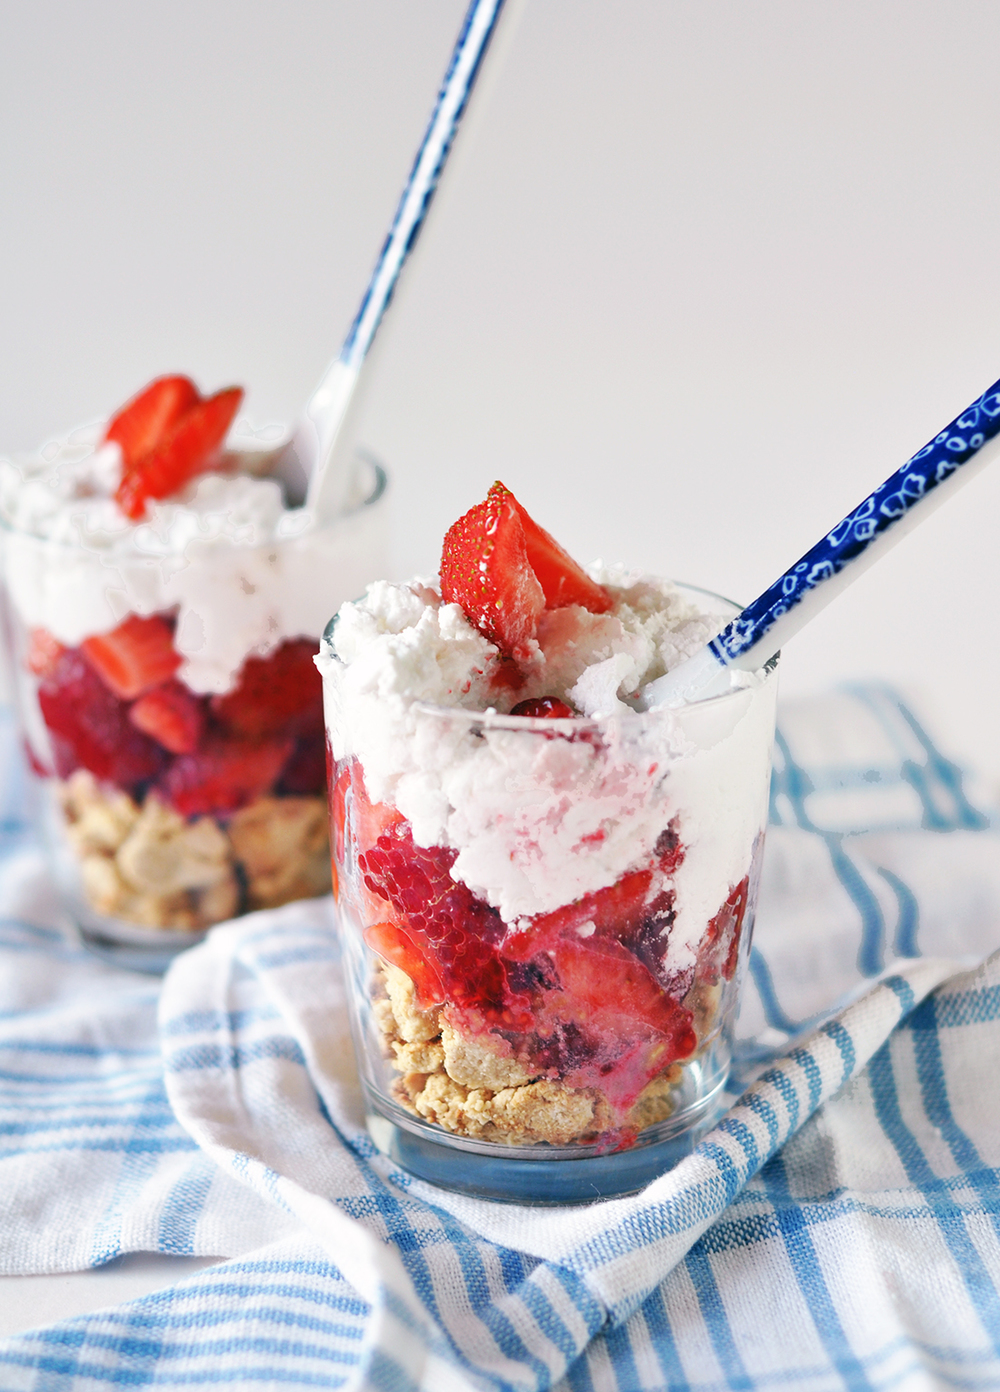 Mmmm... stick your spoon right to the bottom and get messy! The best way to eat summer parfaits!